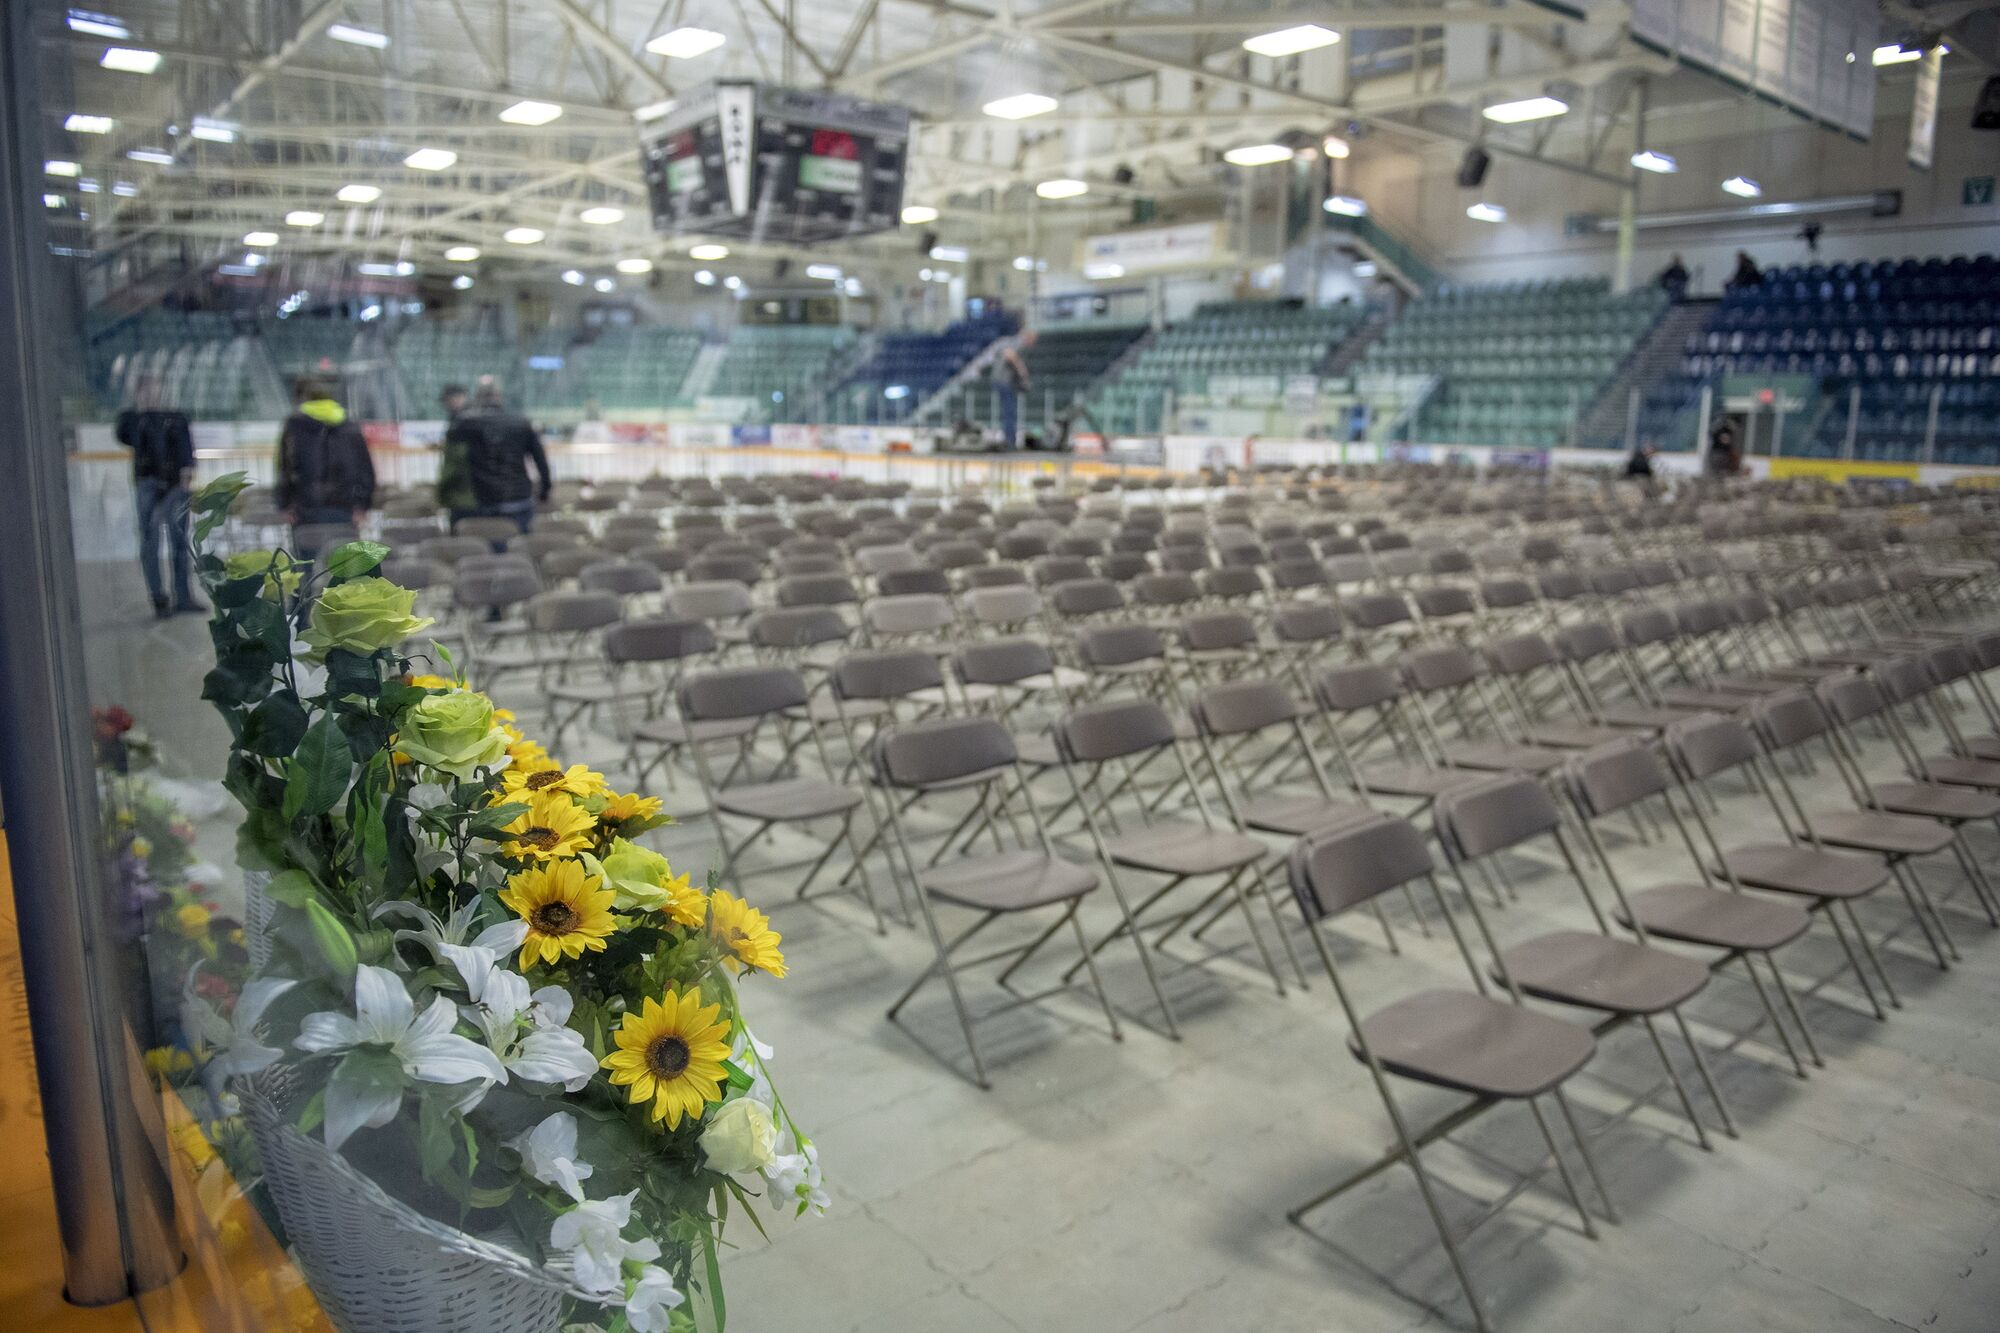 Organizers prepare the Elgar Petersen Arena for a vigil tonight in Humboldt, Sask. A charter bus carrying the town's Broncos hockey team was involved in a collision with a semi-truck Friday, killing 15 people and seriously injuring more than a dozen others.